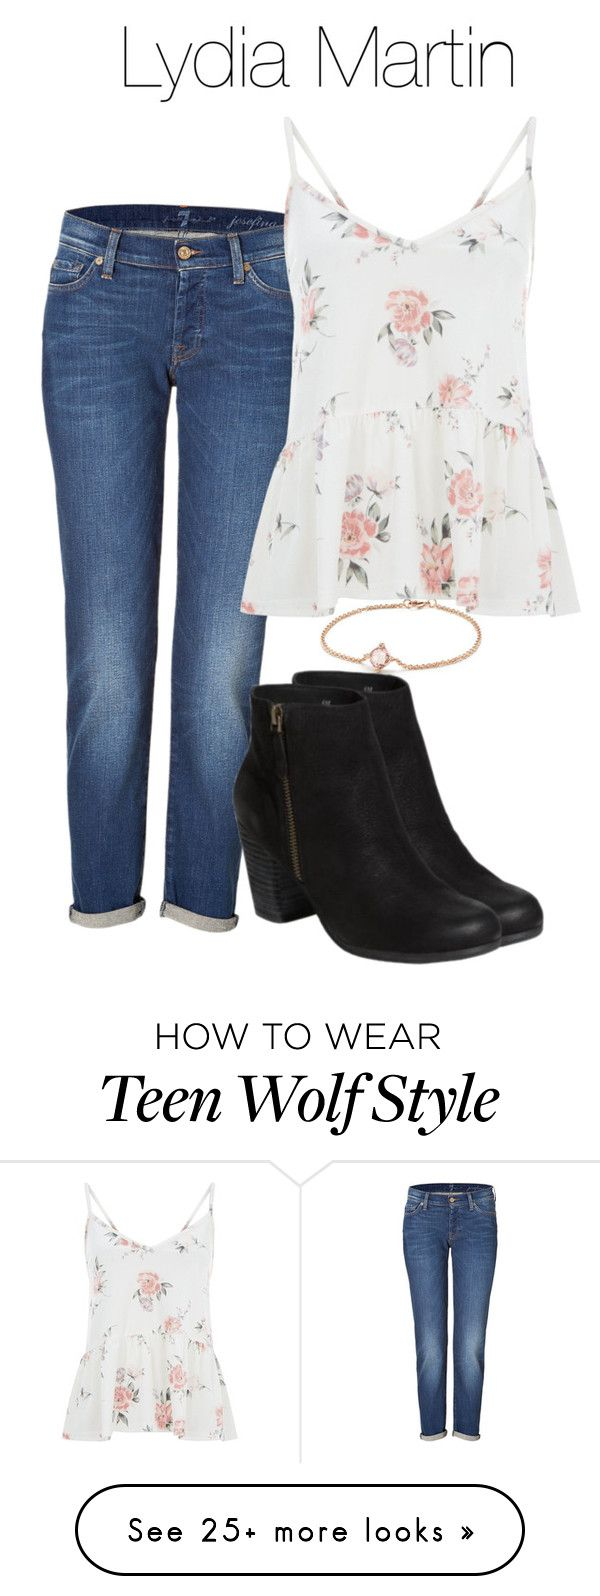 """Lydia Martin summer outfit with jeans - tw / teen wolf"" by shadyannon on Polyvore featuring David Yurman and 7 For All Mankind"